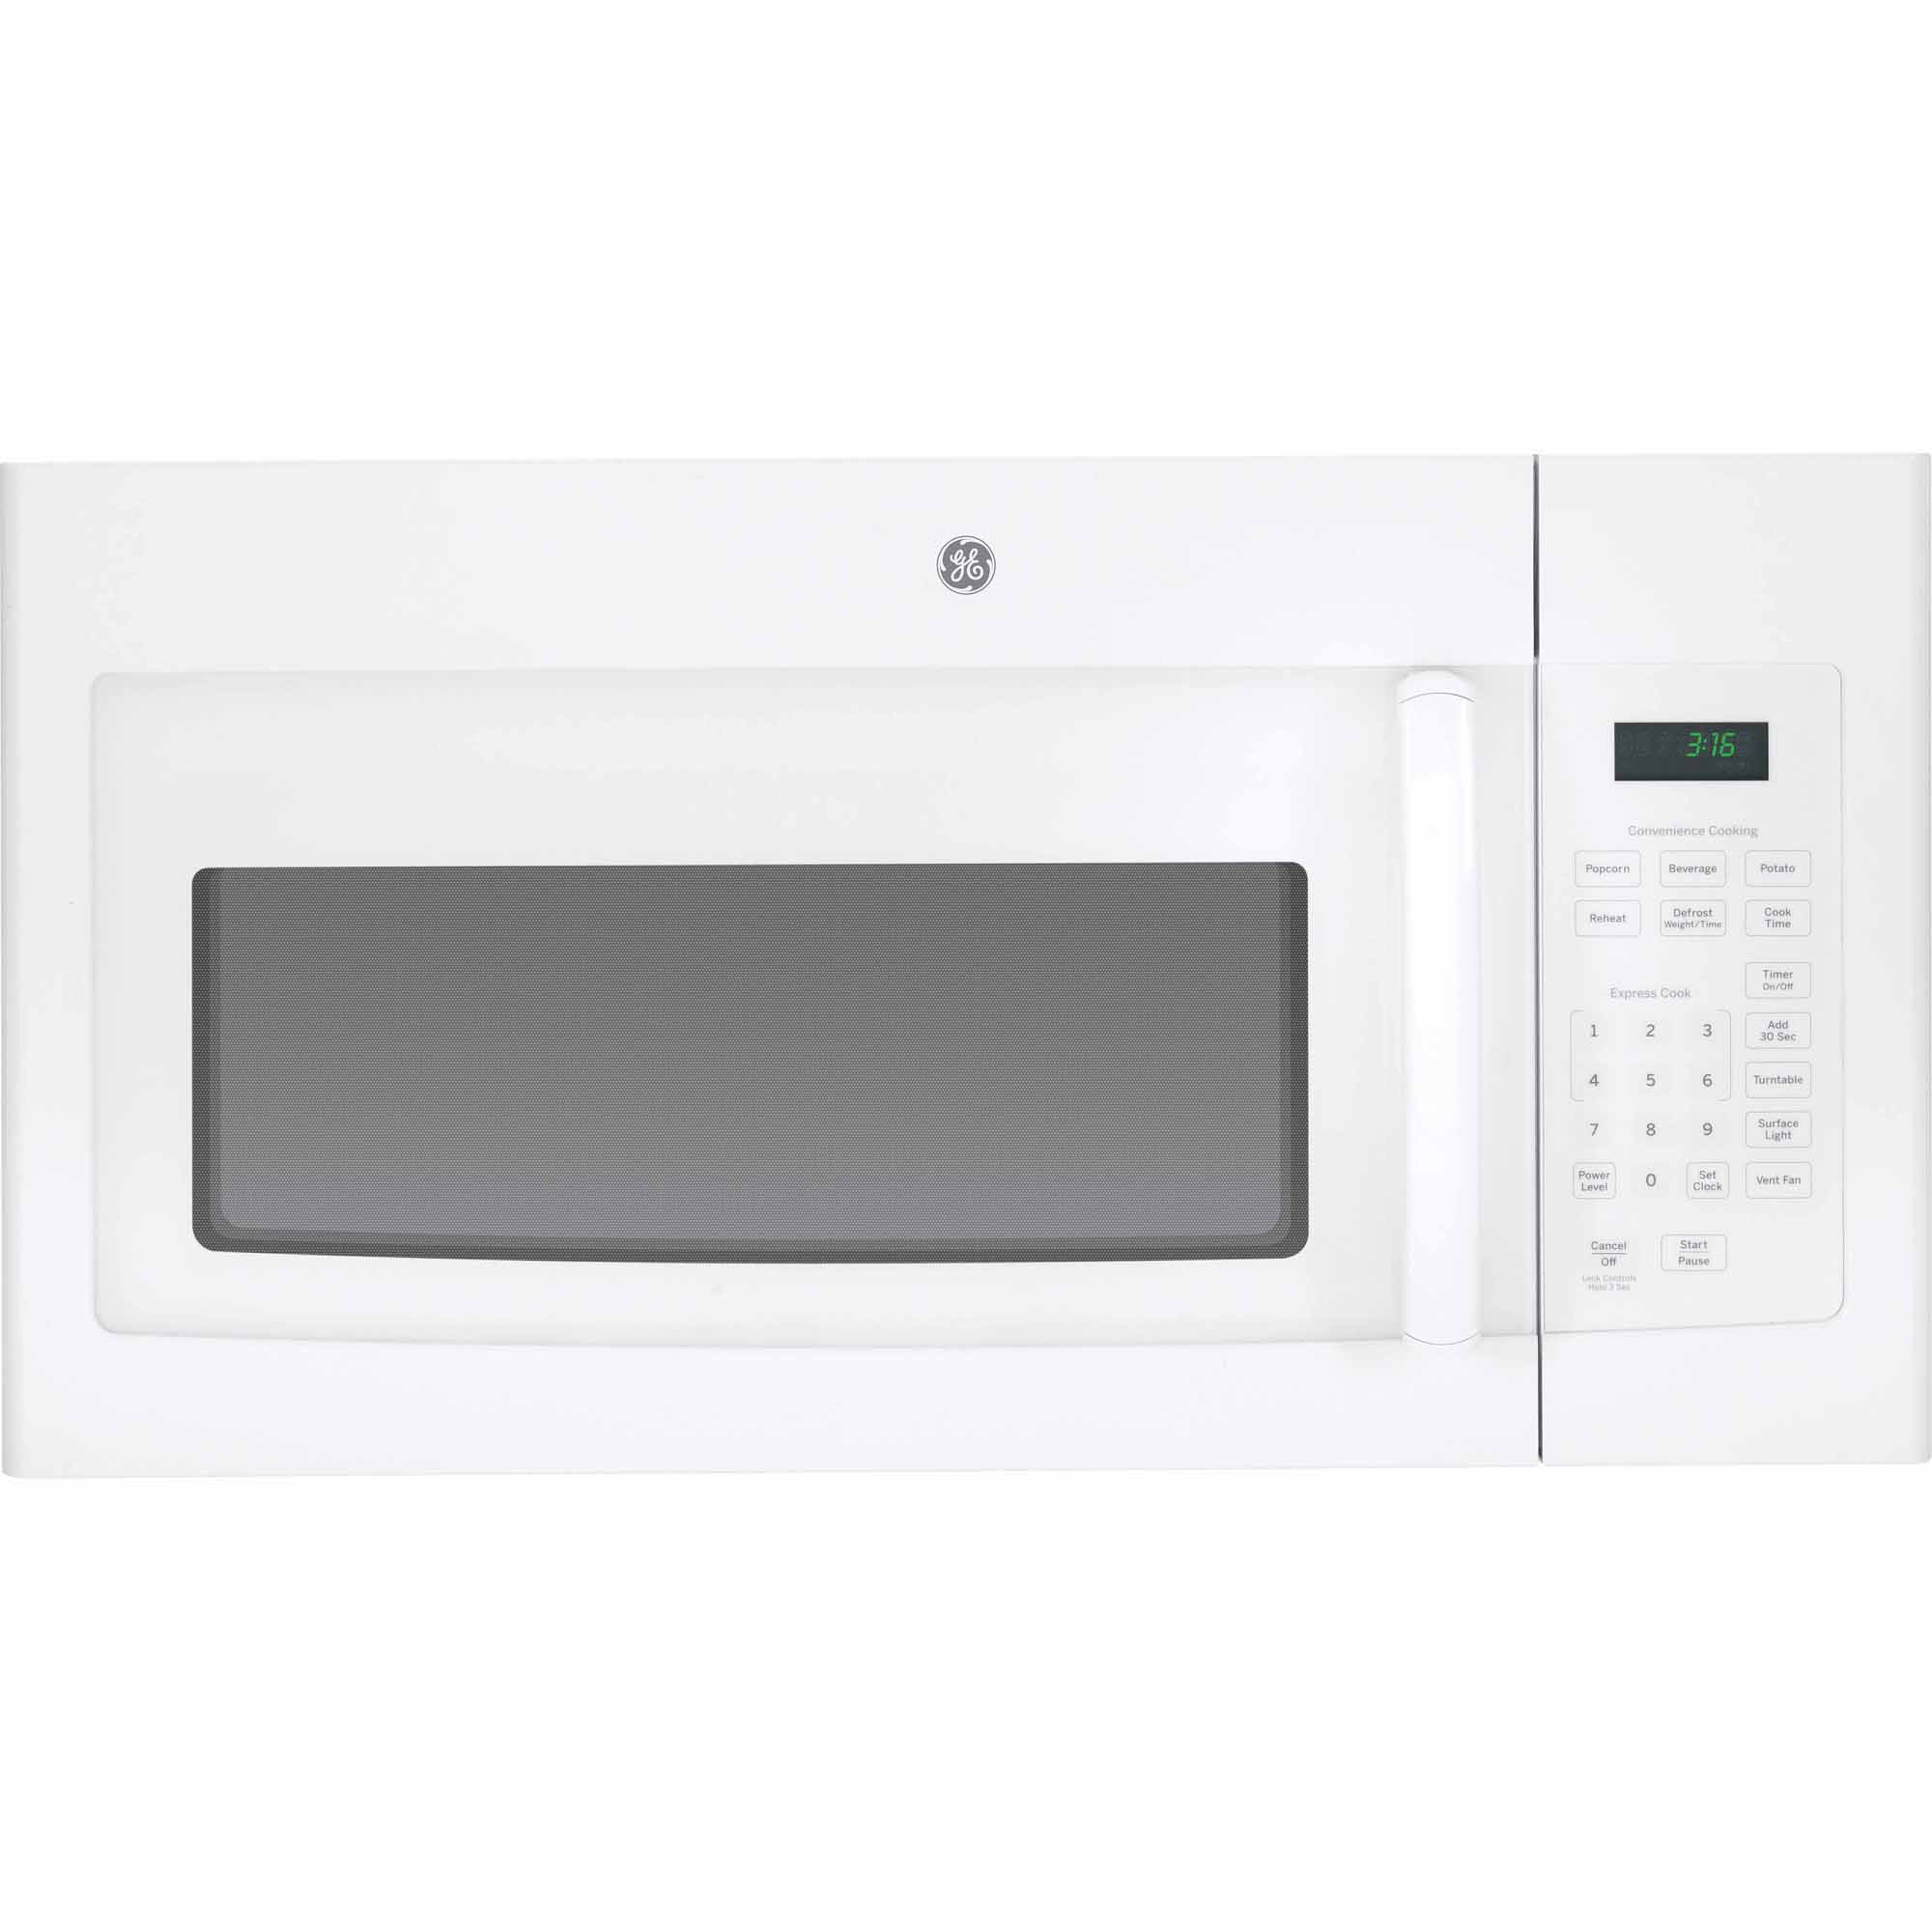 1.6 cu. ft. Over-the-Range Microwave - White